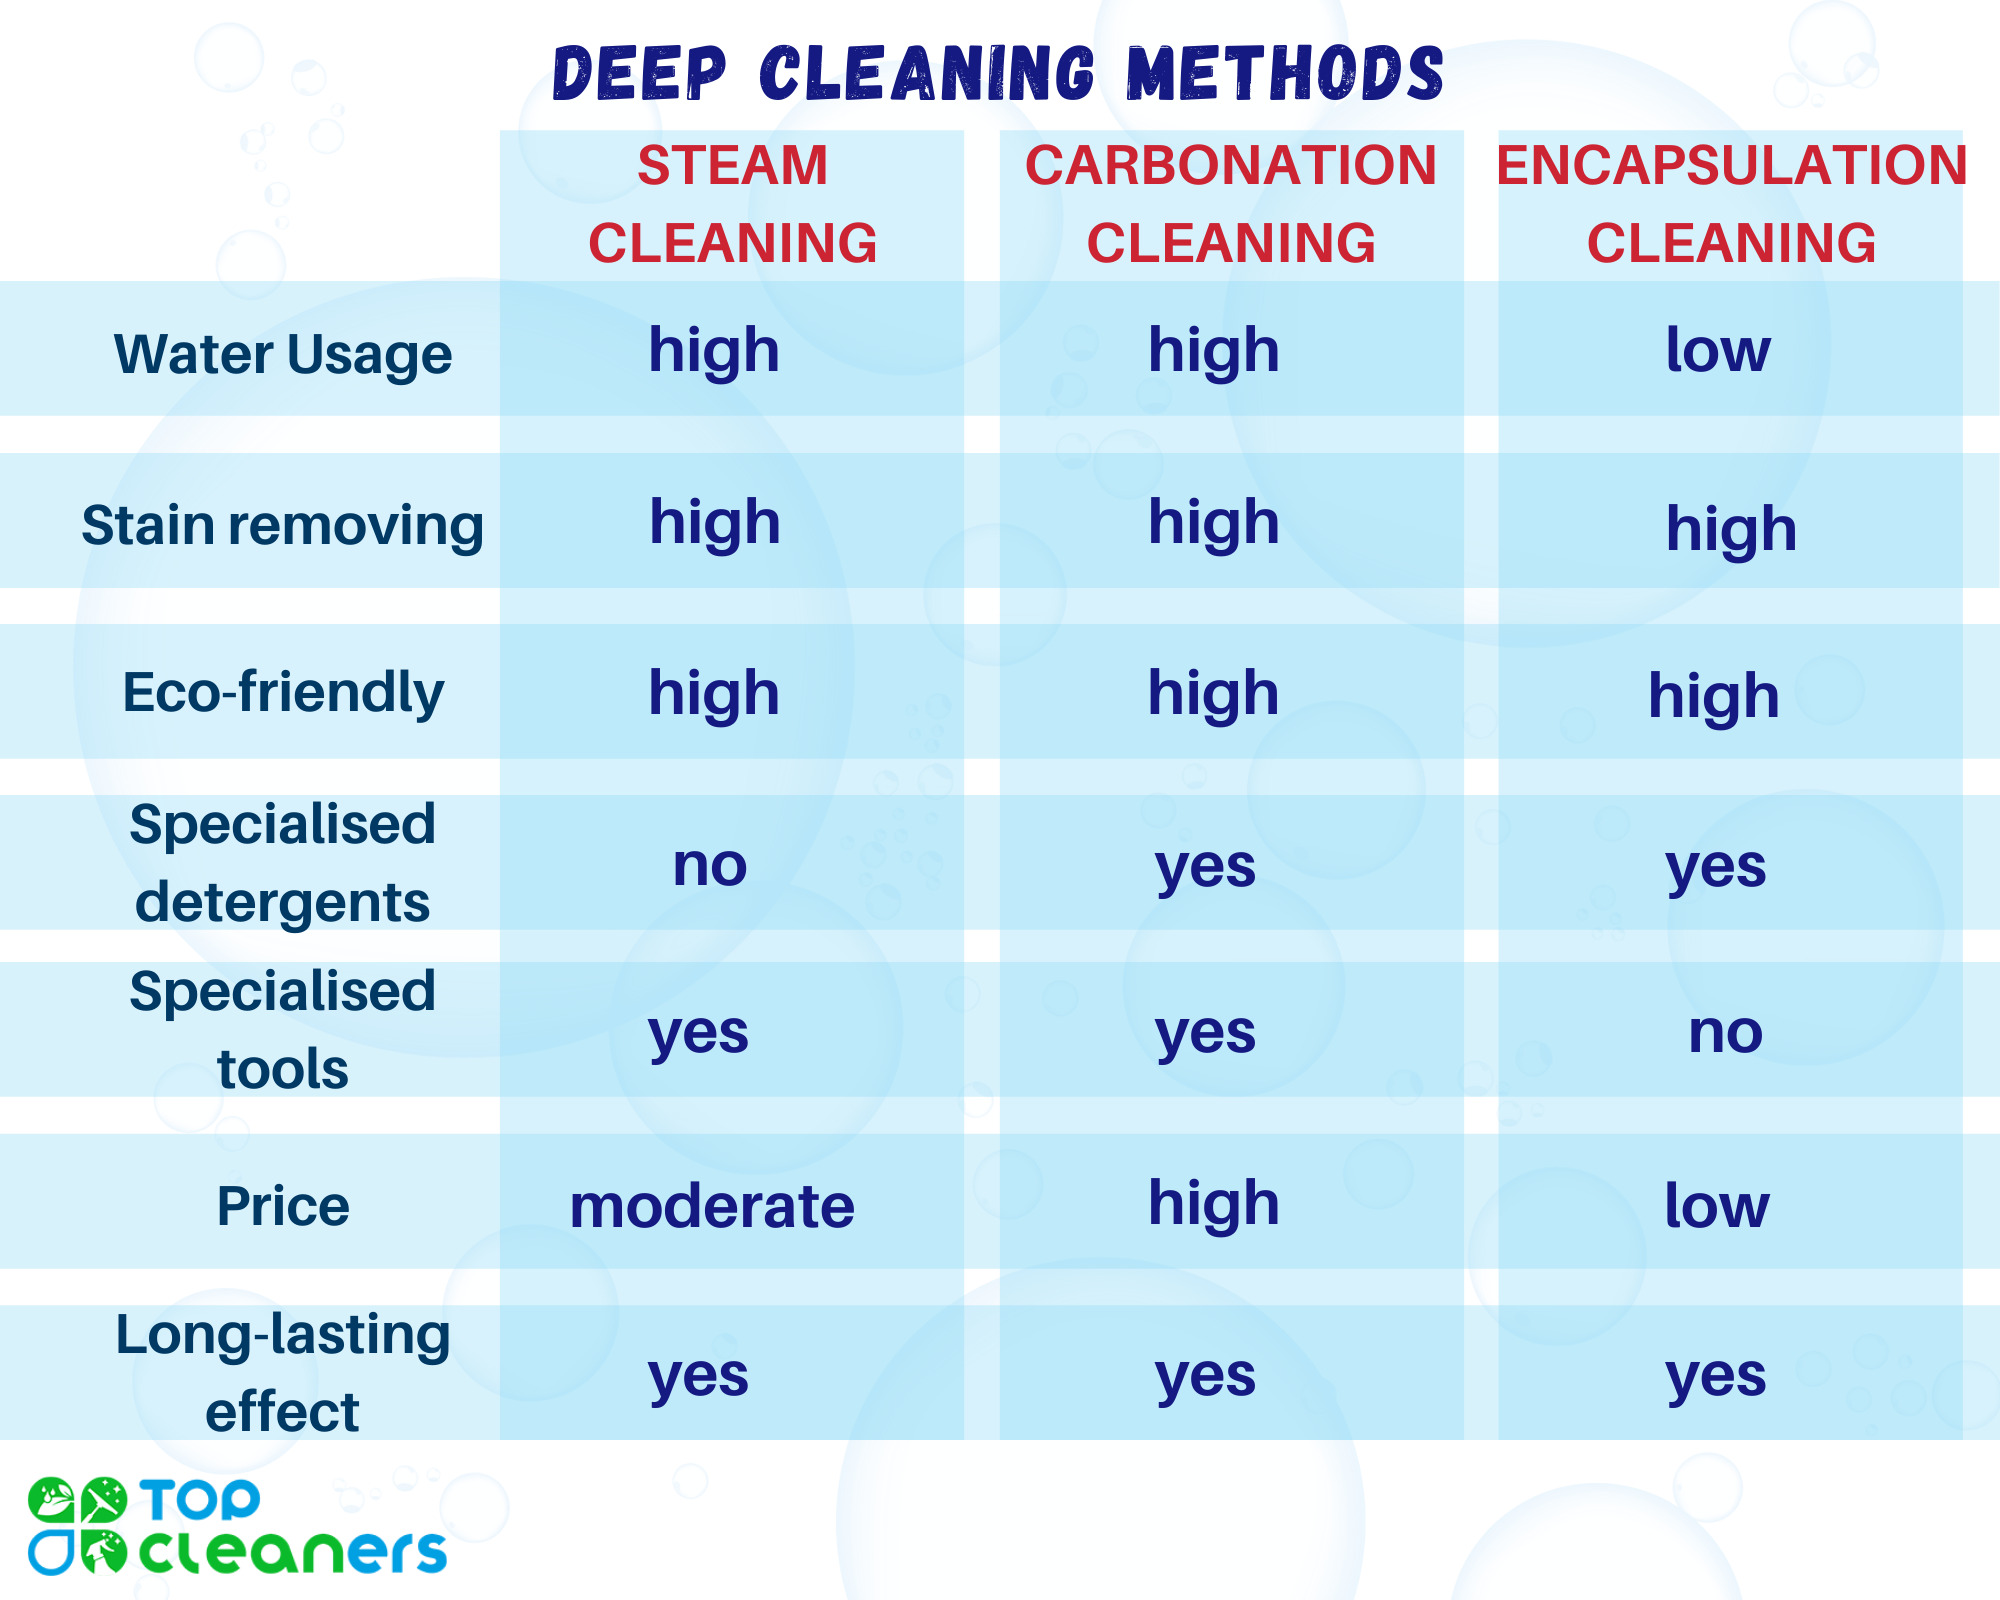 deep cleaning methods chart